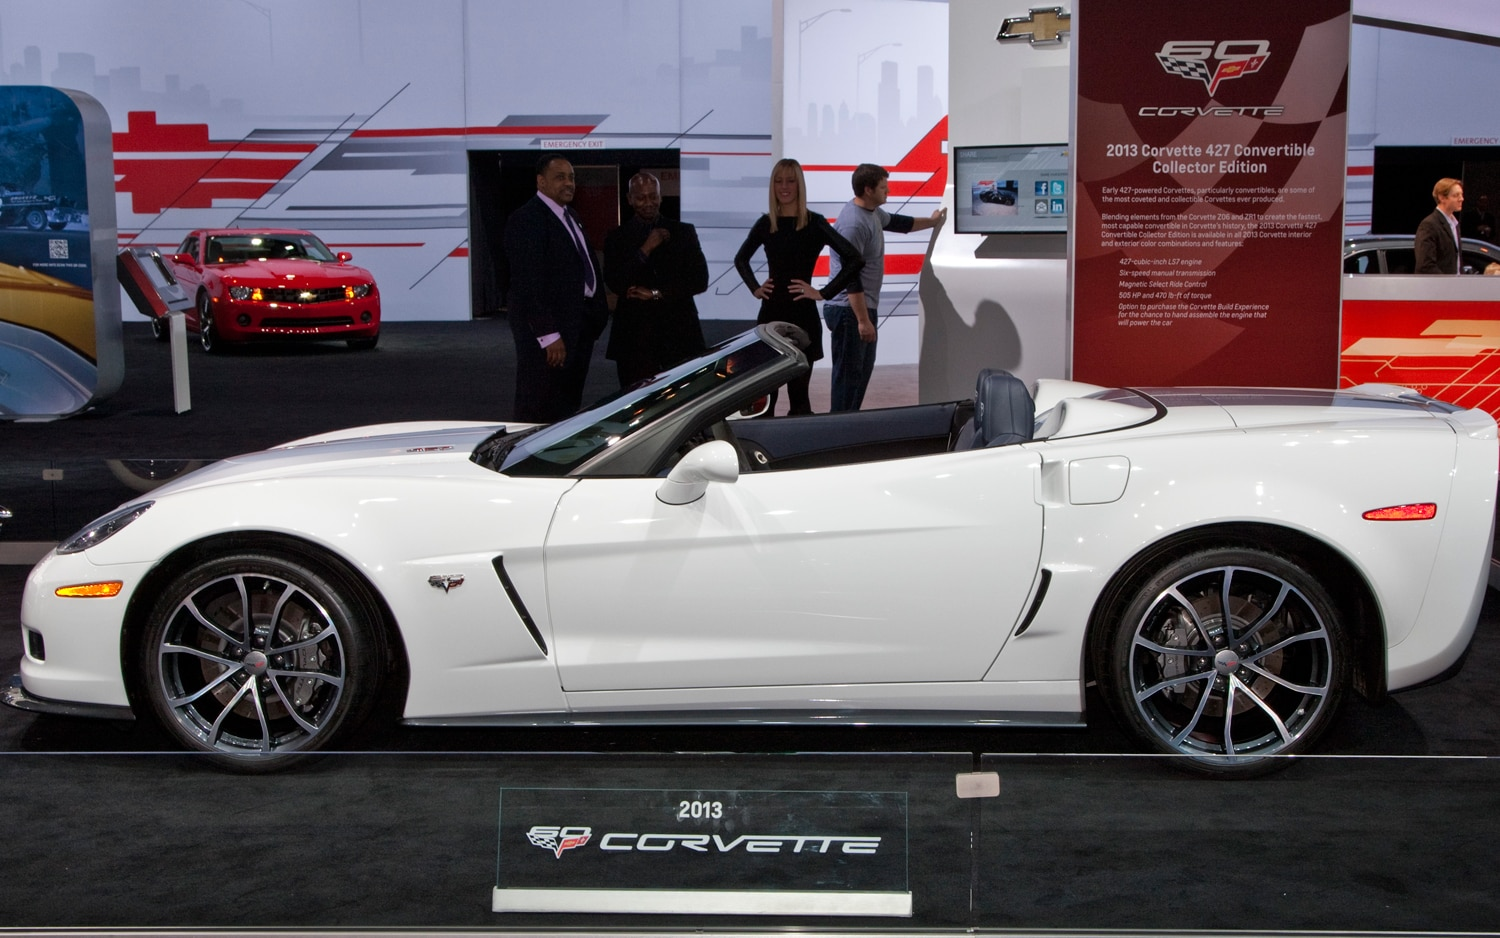 First Look Corvette 427 Convertible Collector Edition